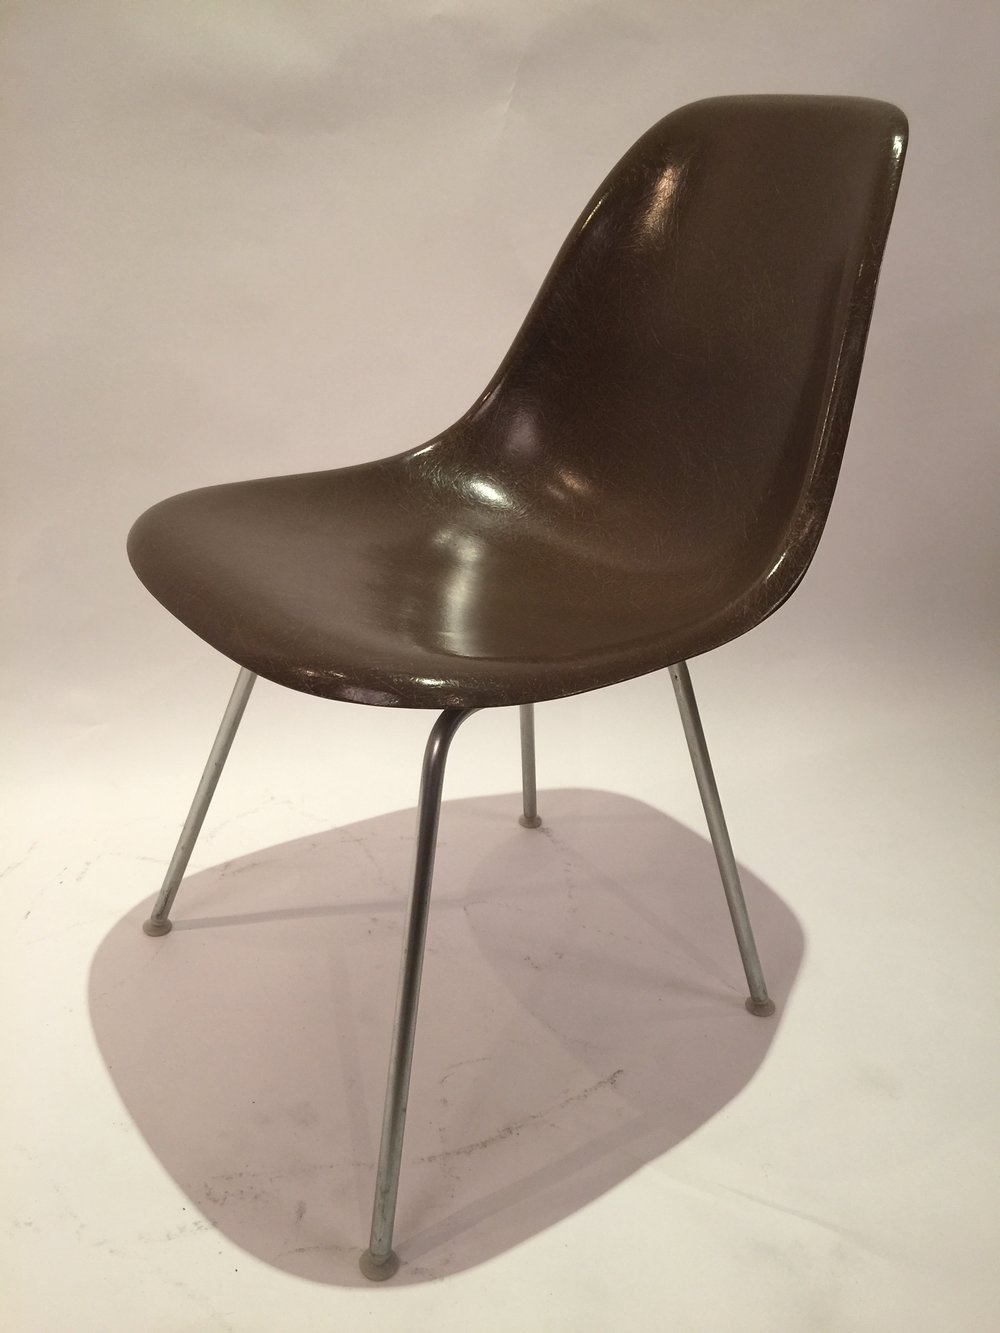 Eames DSX Shell chair for Herman Miller